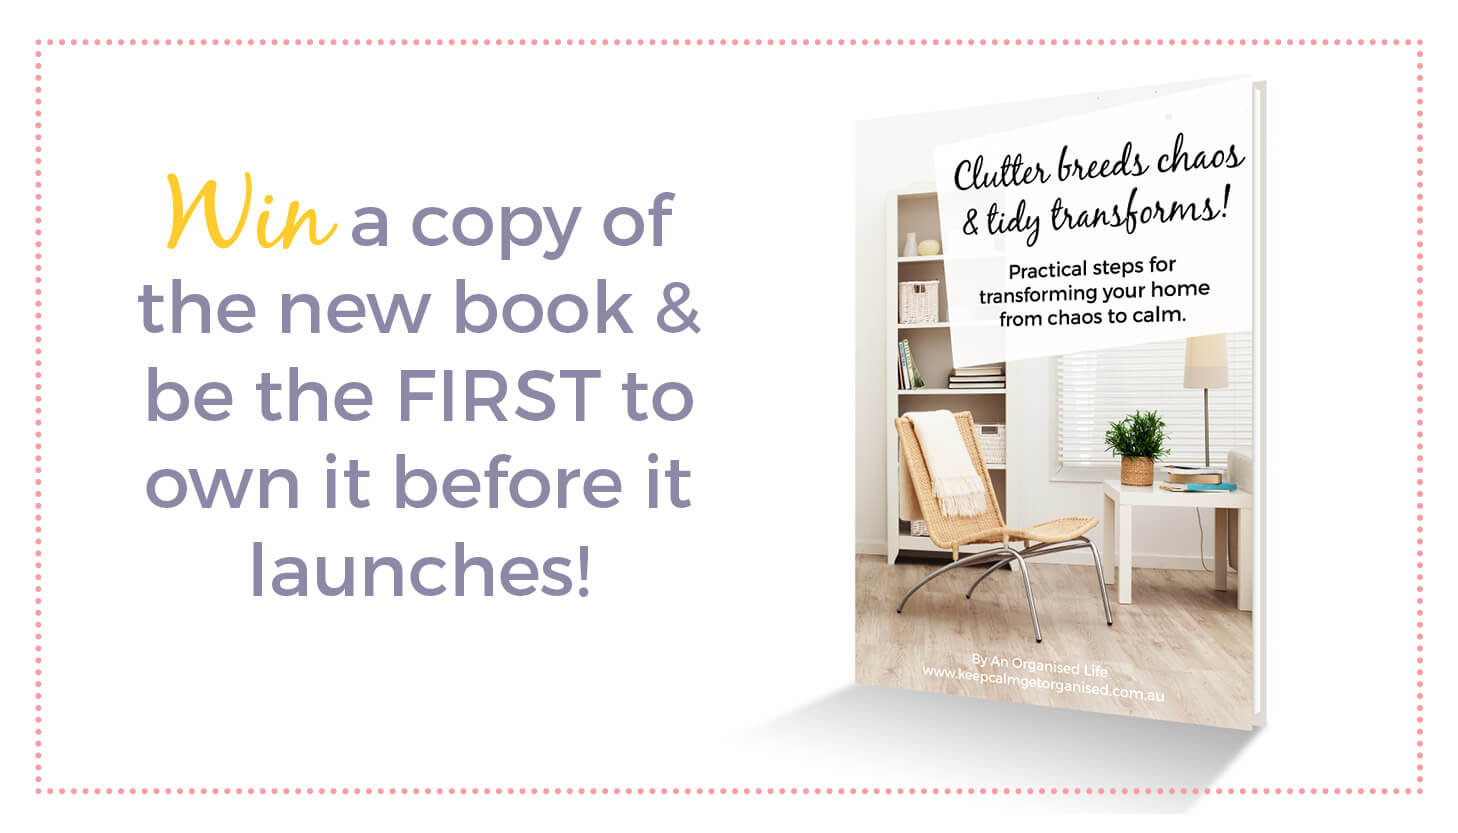 WIN a copy of the new eBook launching tomorrow!